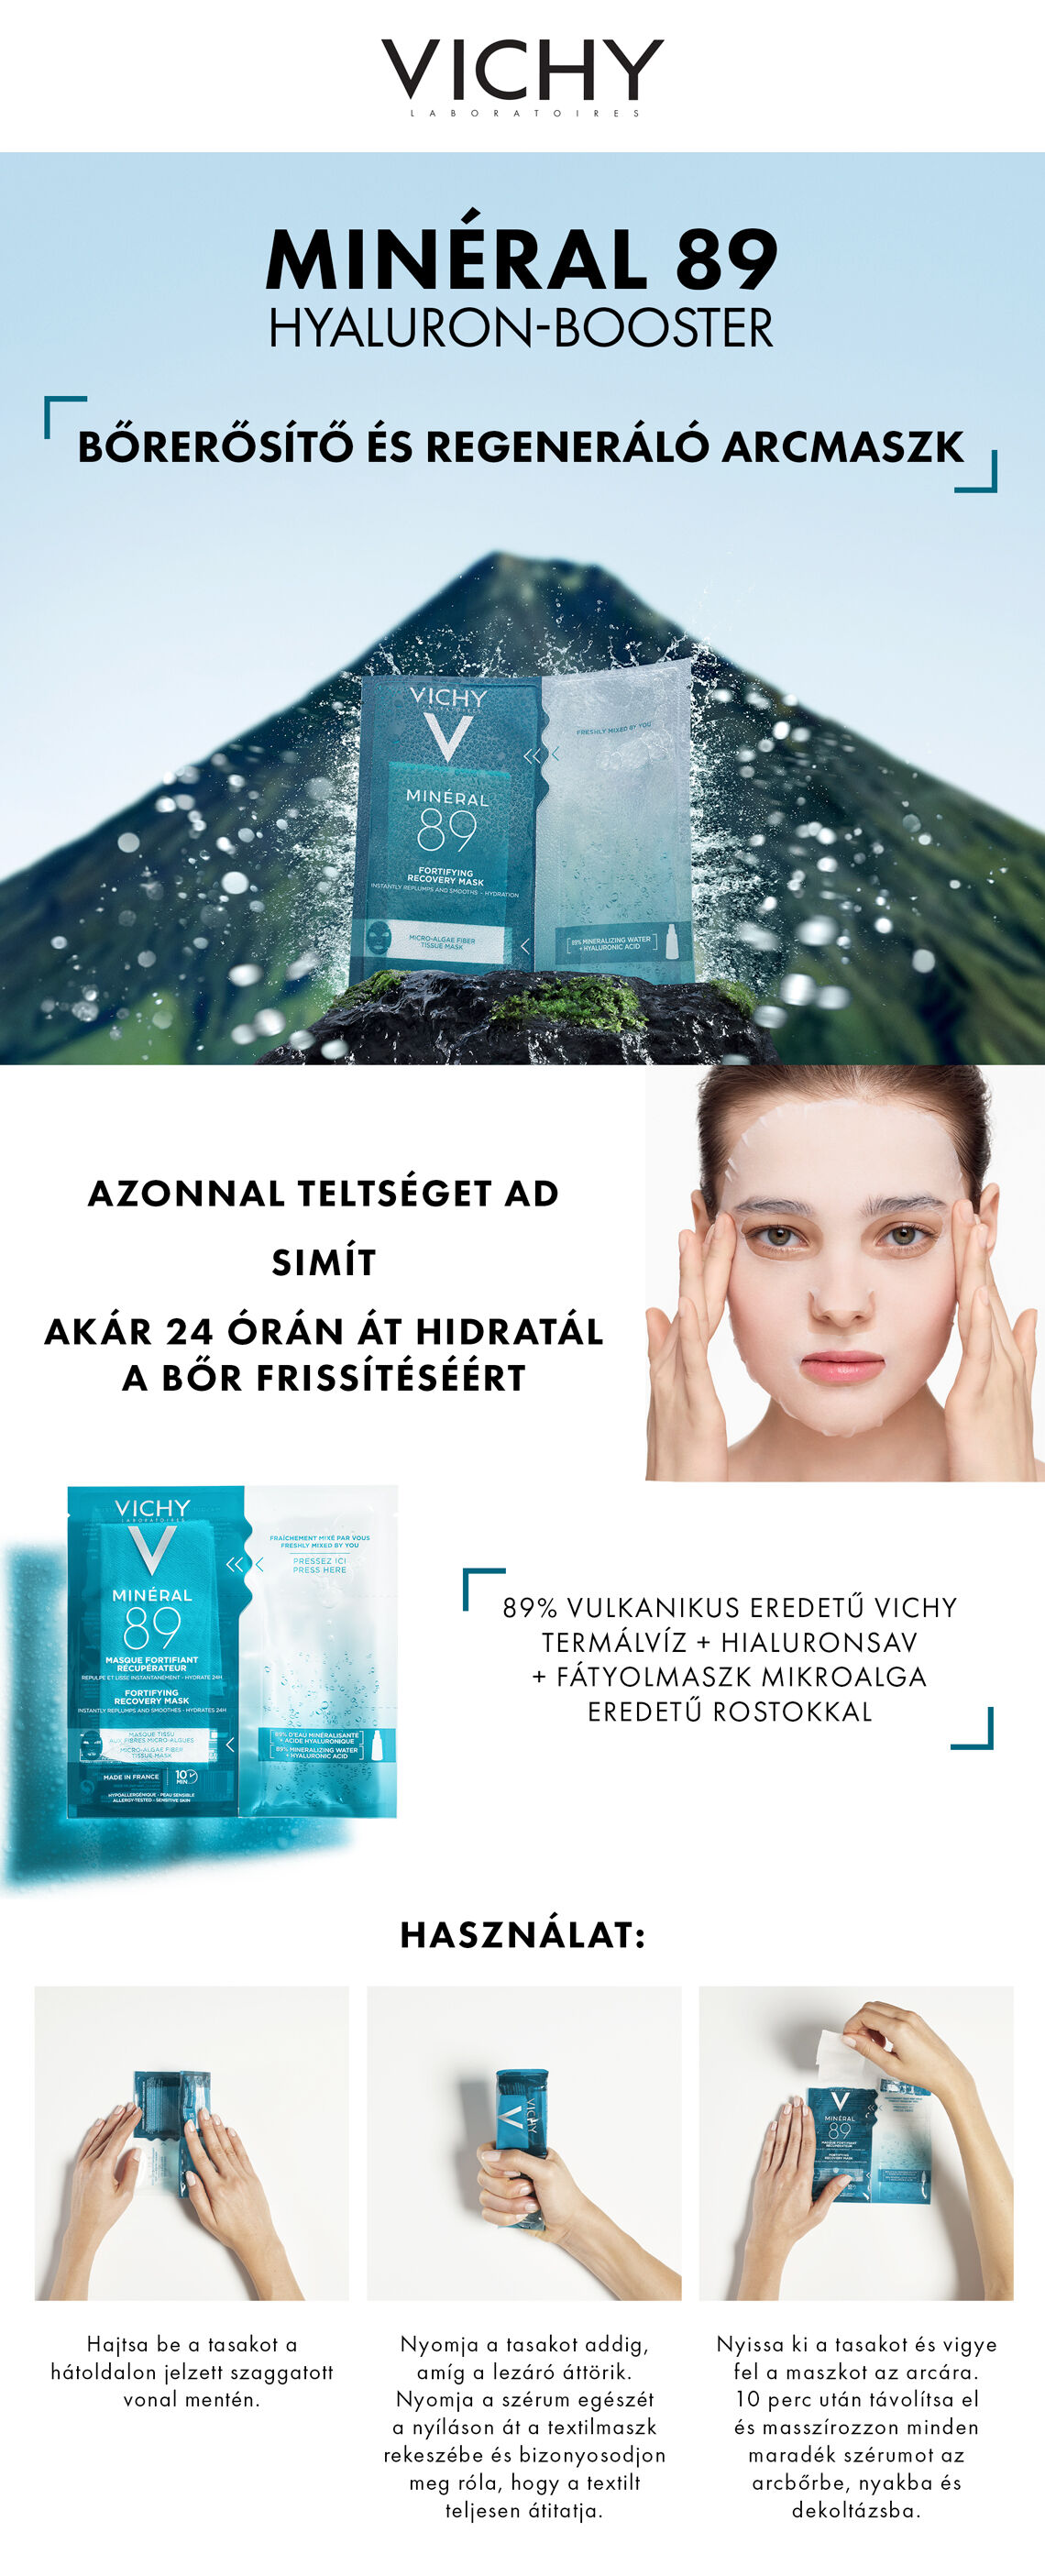 Vichy Minéral 89 Hyaluron-Booster arcmaszk